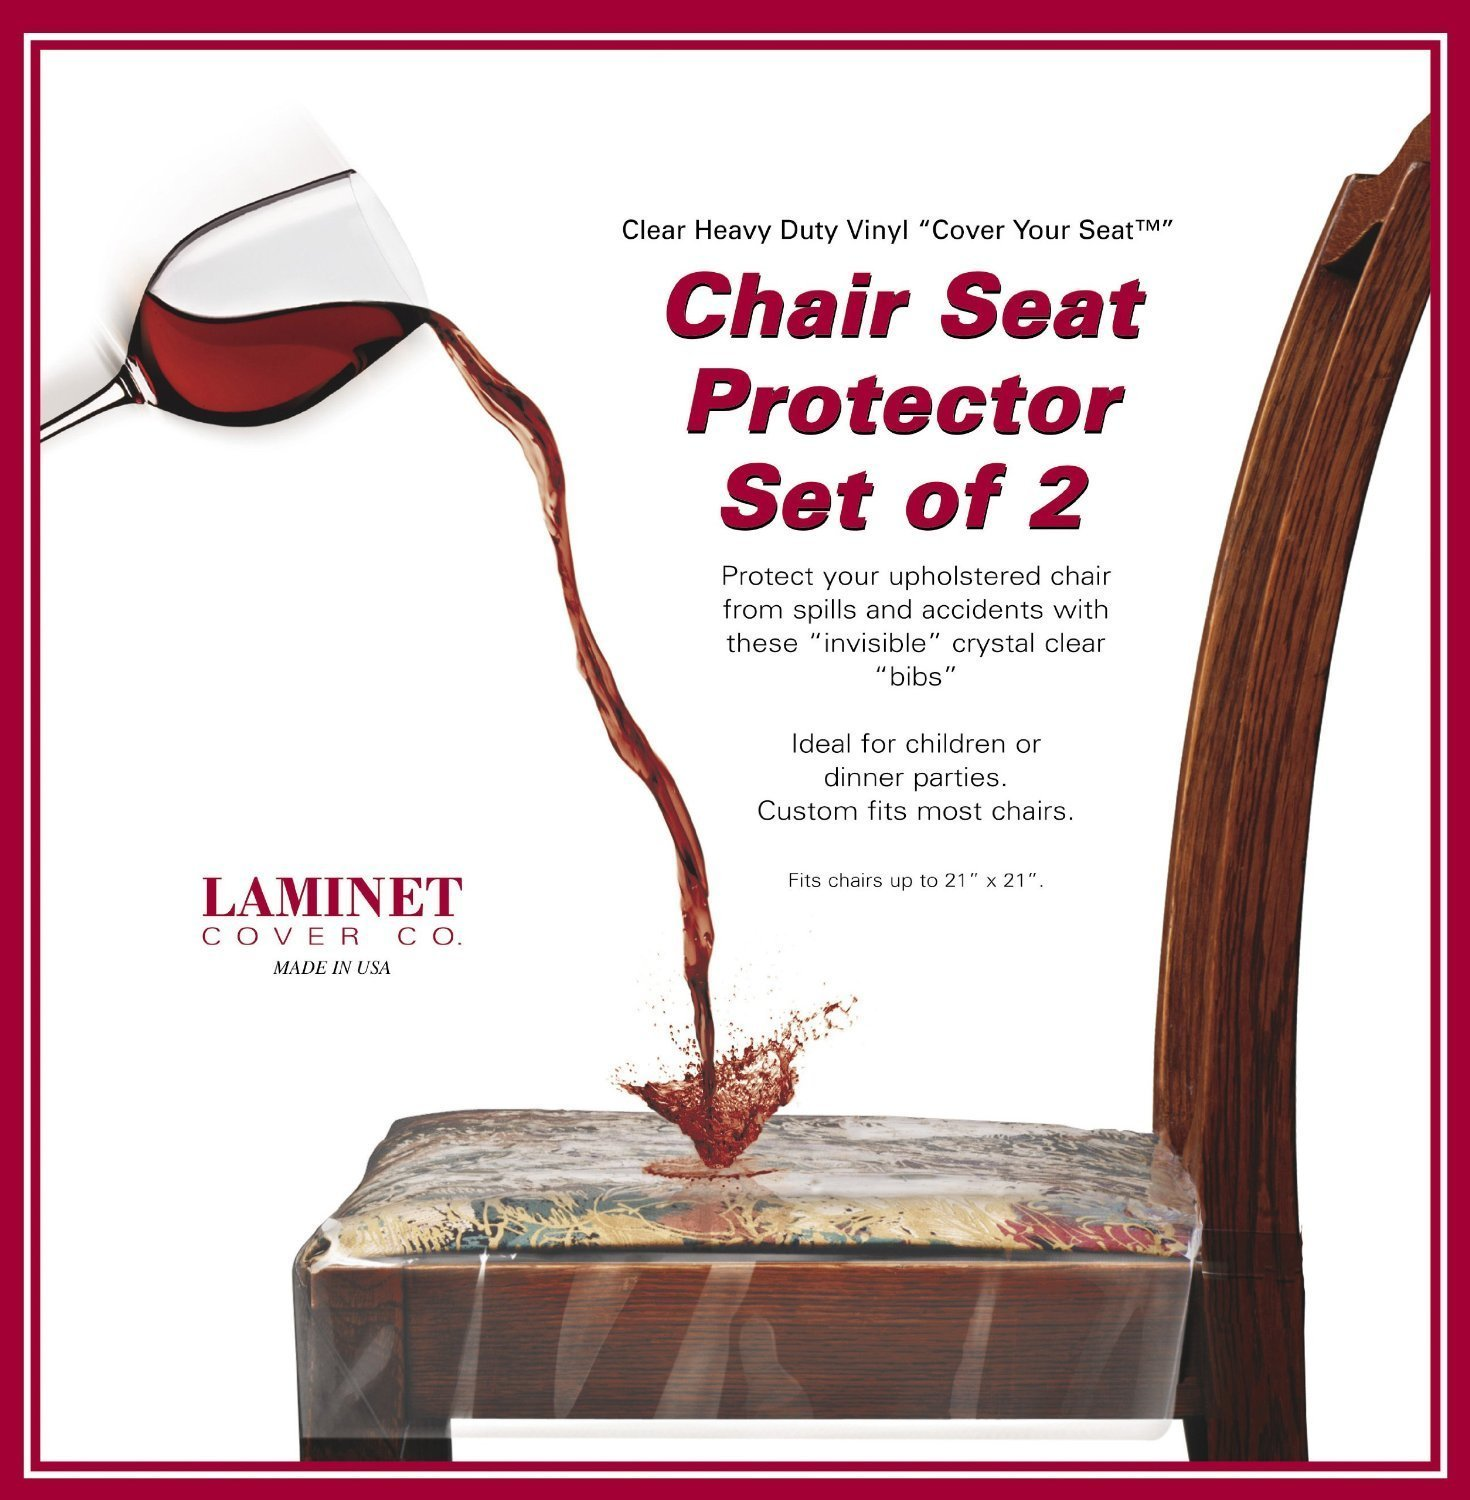 LAMINET Vinyl Chair Protectors, Clear, 26X253/4-Inch, Fits Chairs up to 21x21-Inch, Set of 2 LAMINET COVER COMPANY CSC1-2